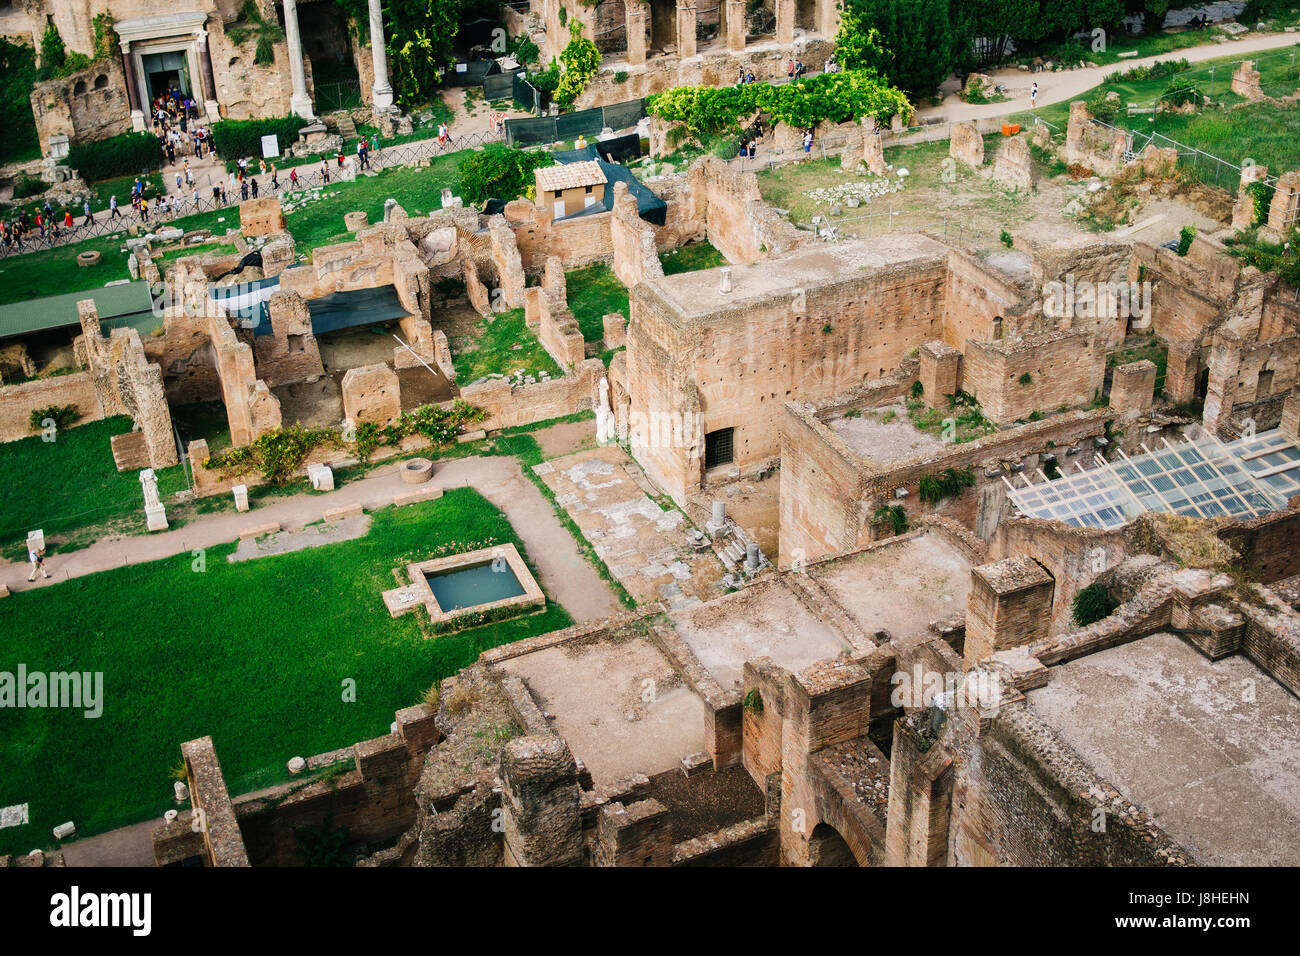 Roman Forum or Foro Romano seen from a high angle in Rome, Italy. - Stock Image